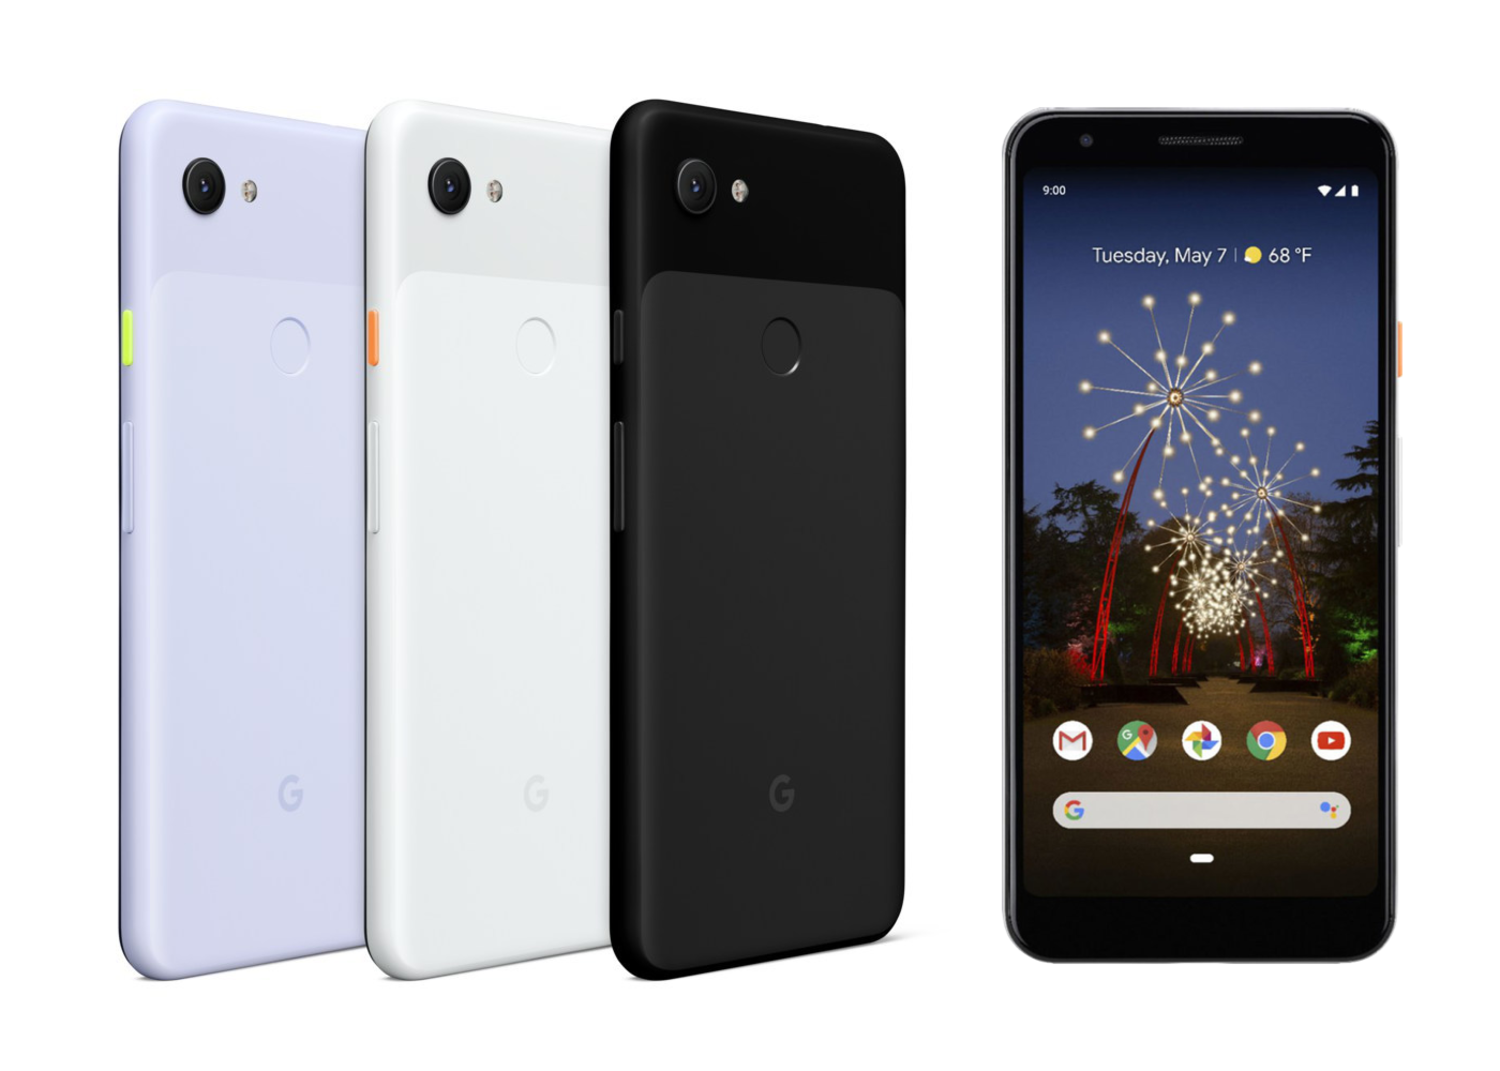 The latest developments of Google's Pixel series